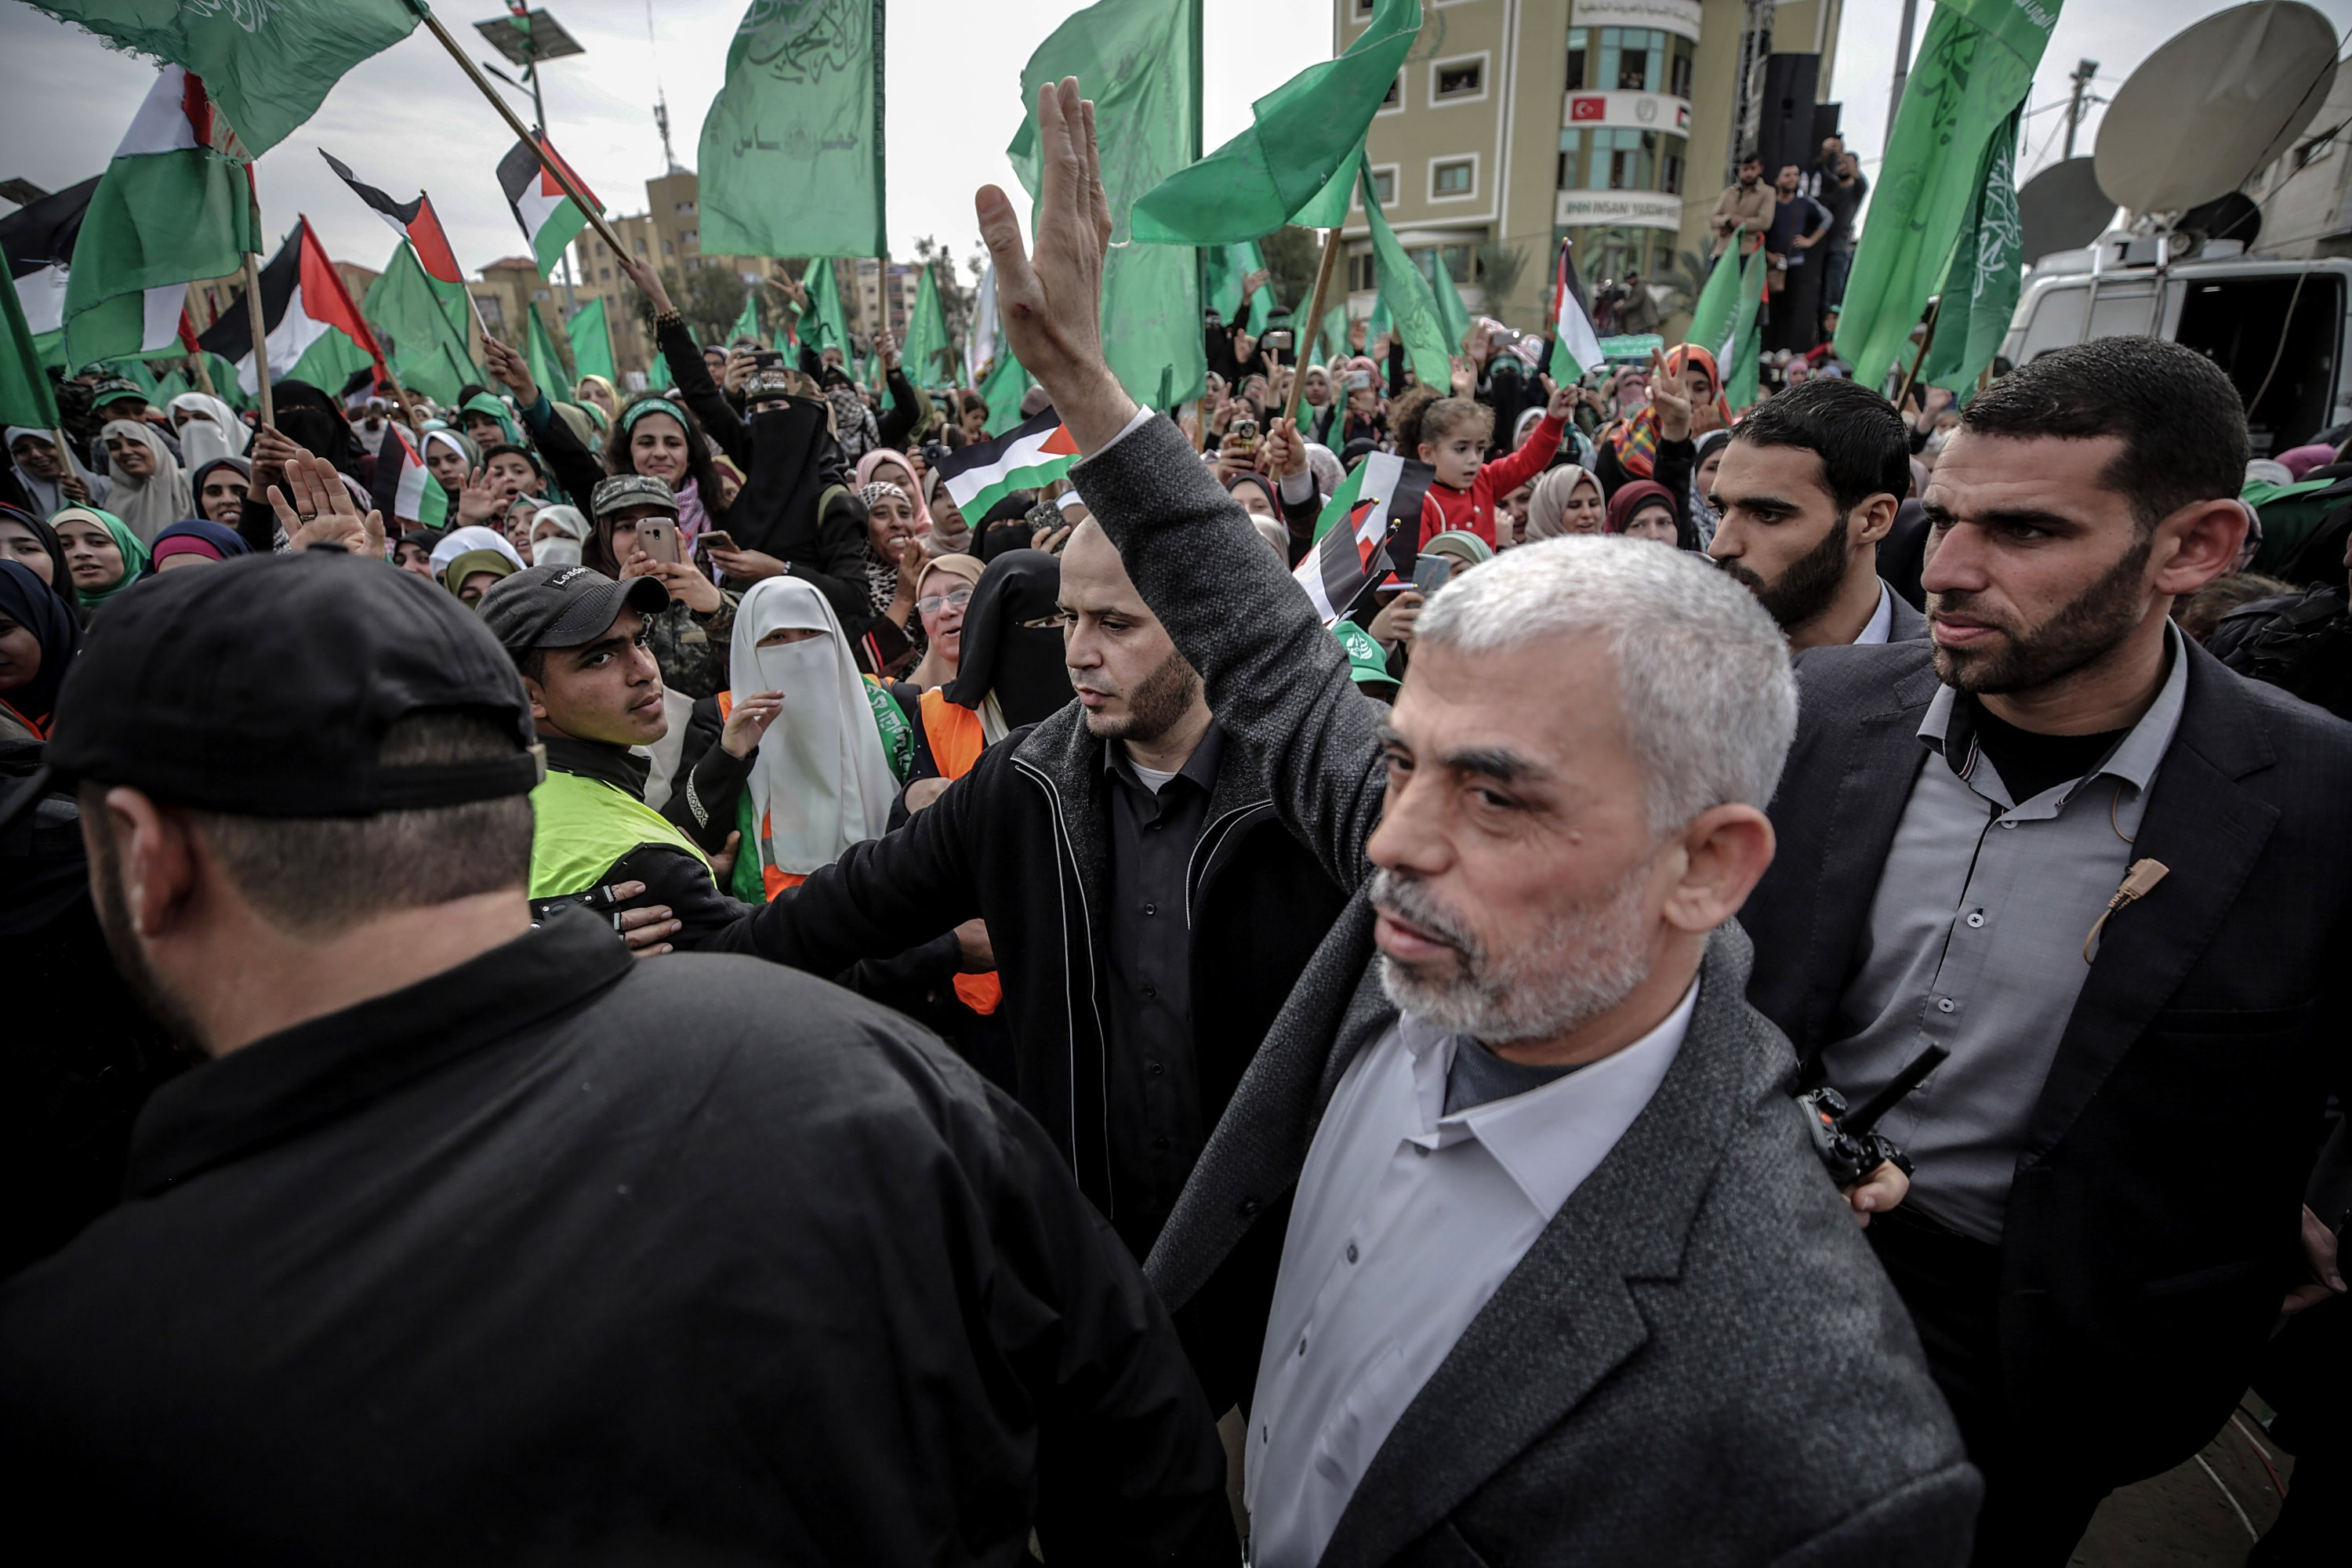 Hamas Gaza leader Yahya Al Sinwar (C) waves to supporters during a Hamas rally to mark the 31st anniversary of the group, in Gaza City, Gaza Strip, Dec. 16, 2018. (EPA Photo)